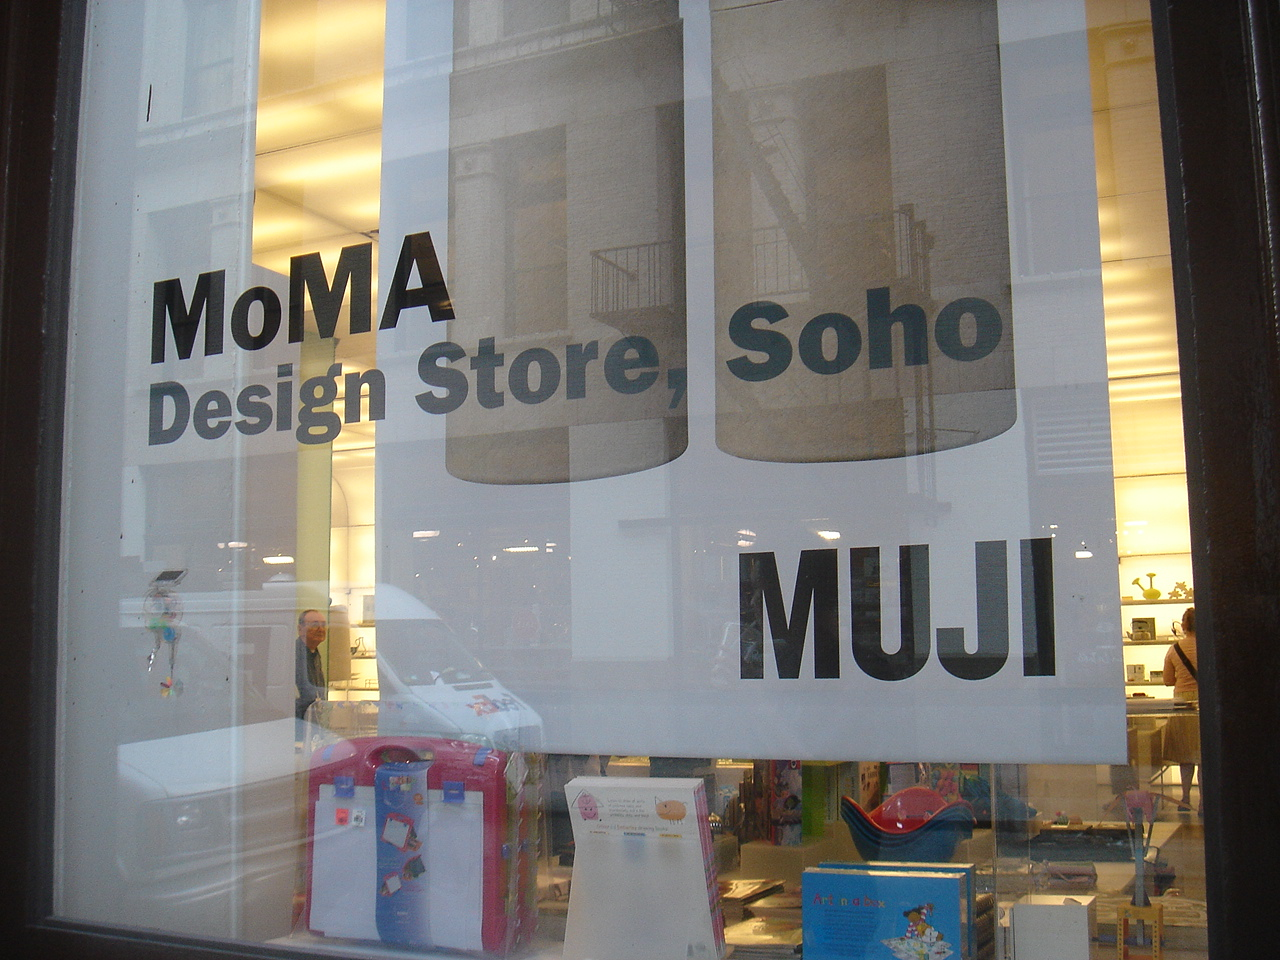 MoMA Store  Top 10 Design Stores in NYC – Part II 187894623 368a6b1603 o